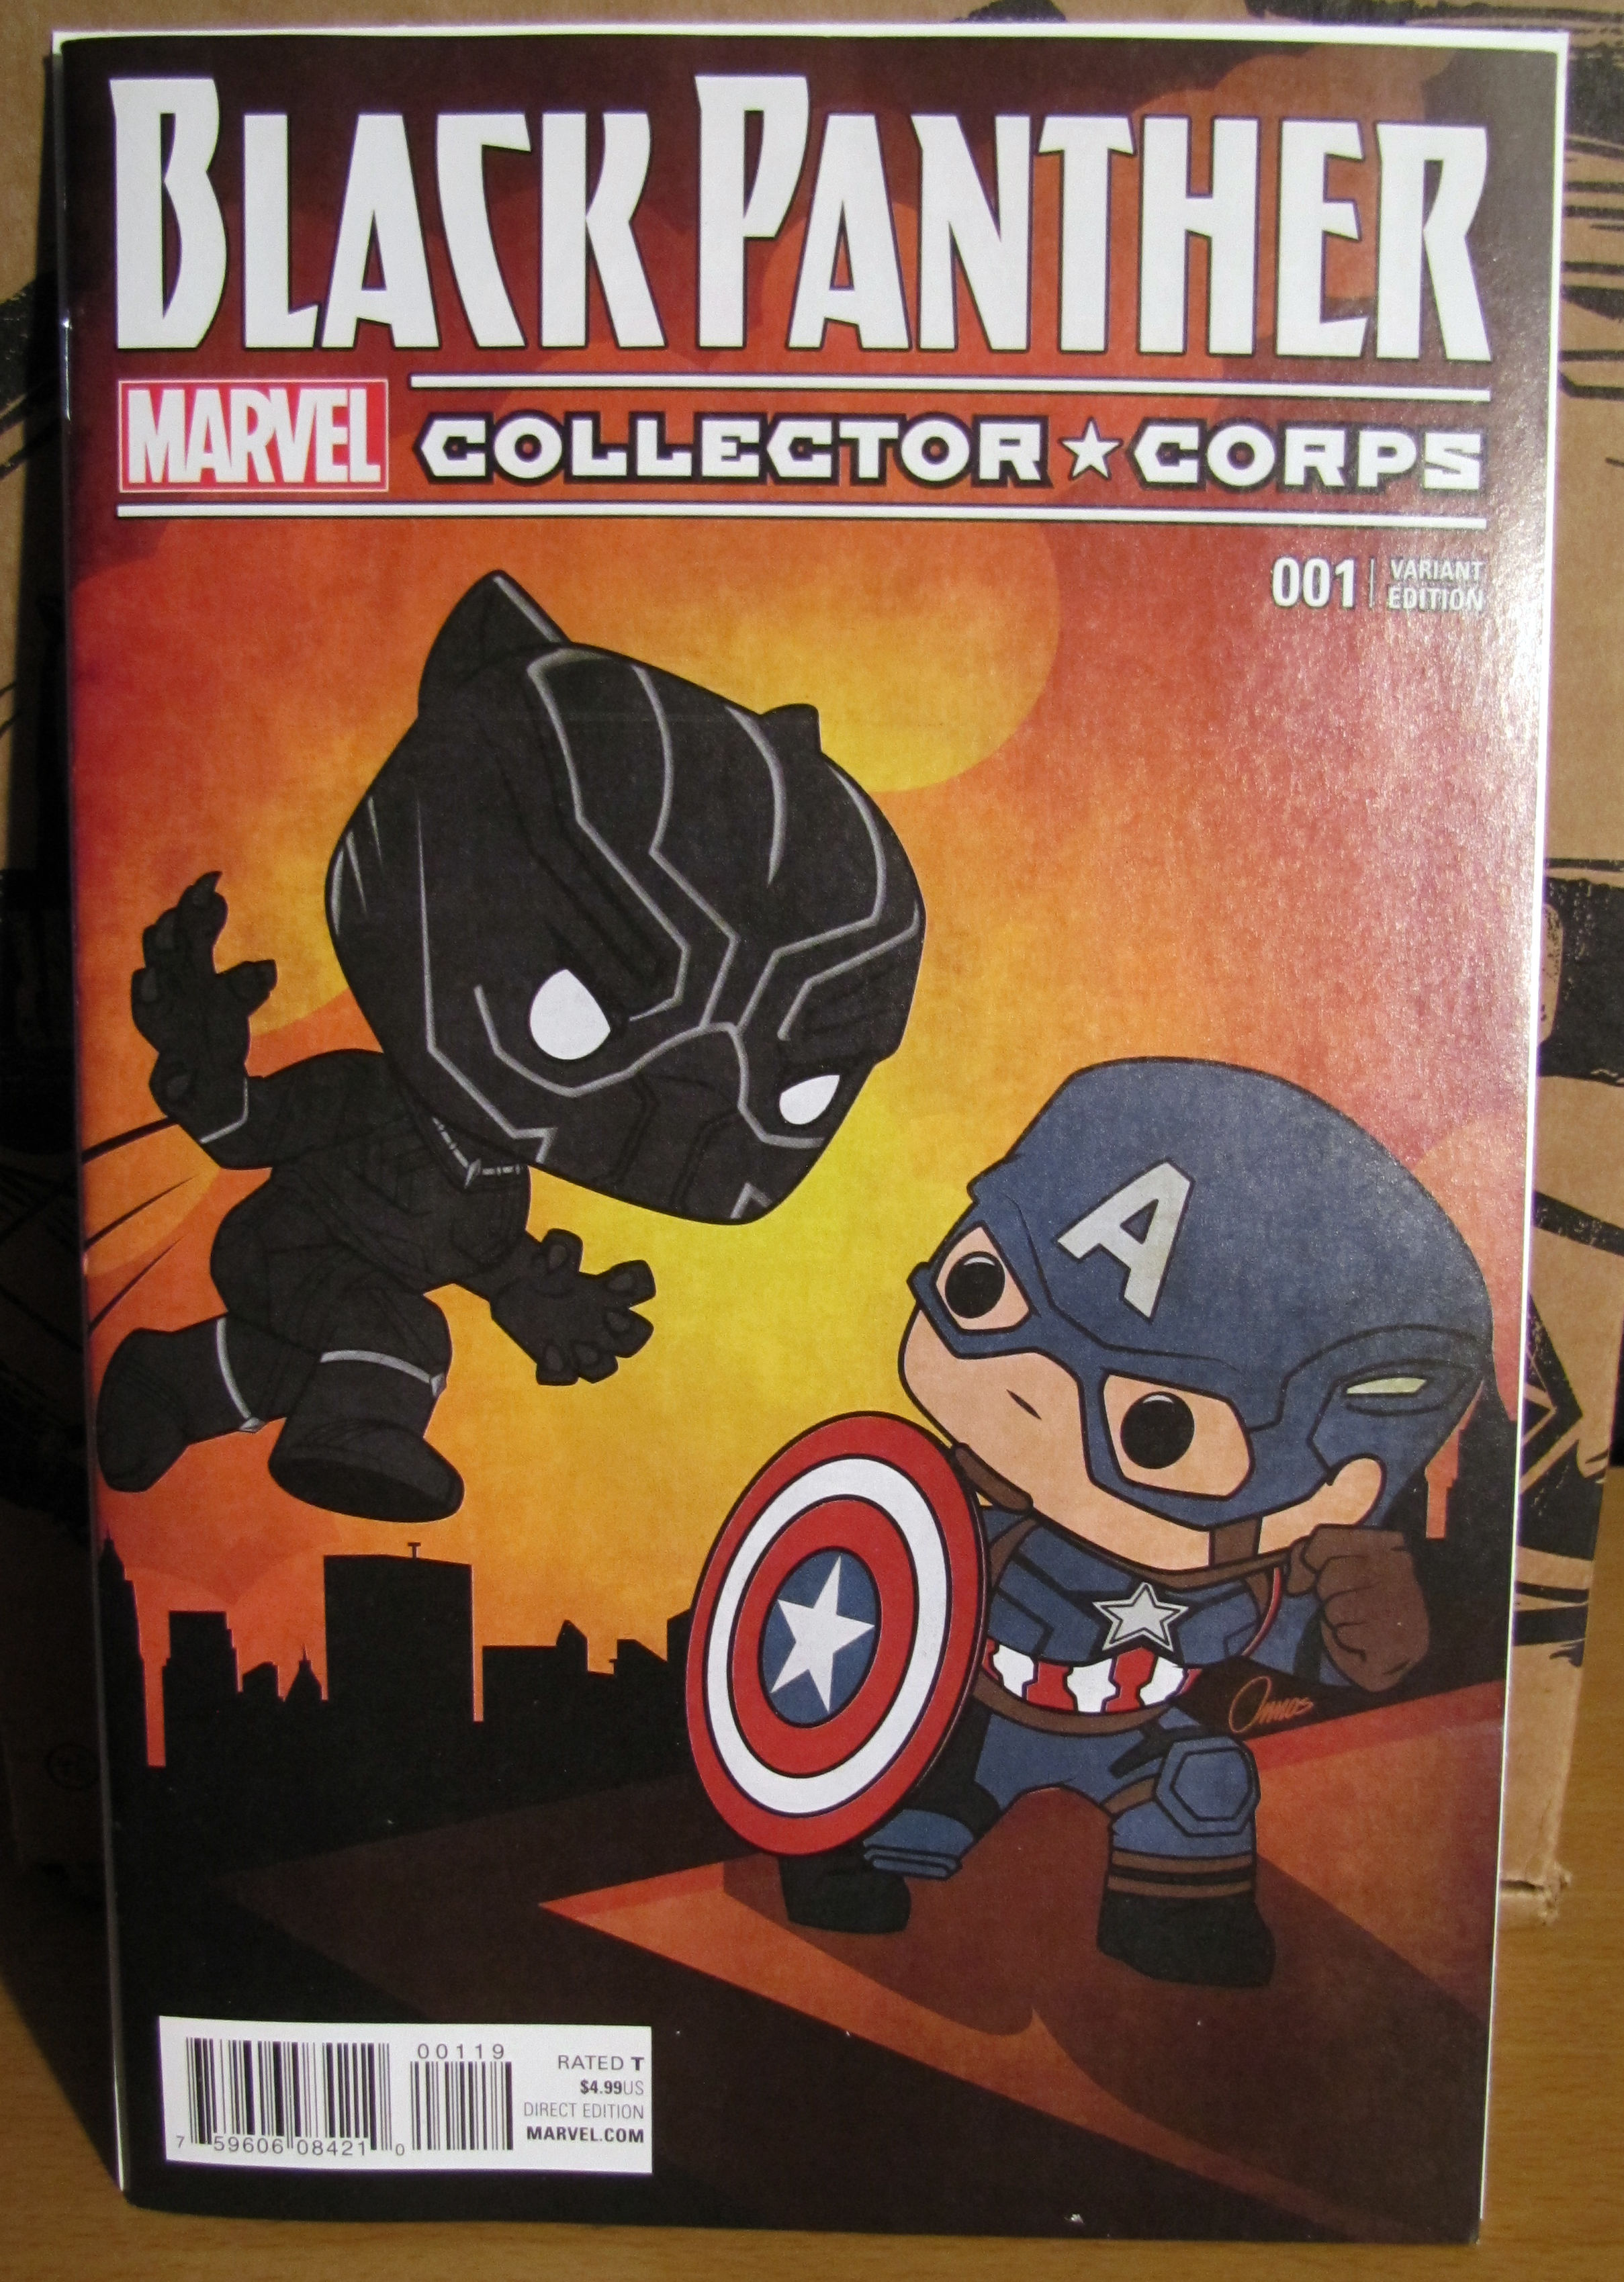 Marvel Collector Corps April 2016 Unboxing